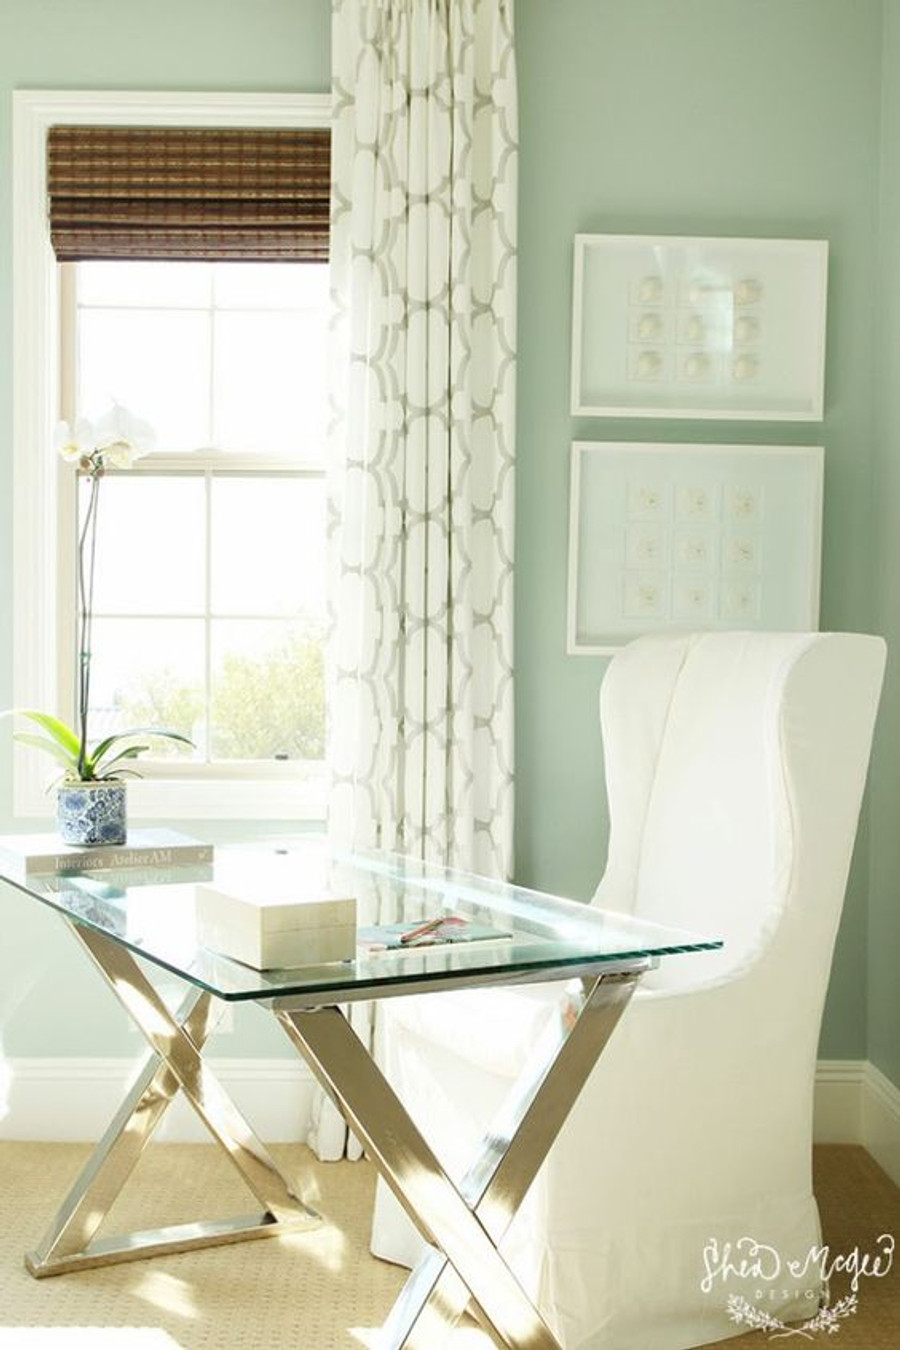 Home Office with Riad Drapes in Pearl Silver (Shea McGee Design)